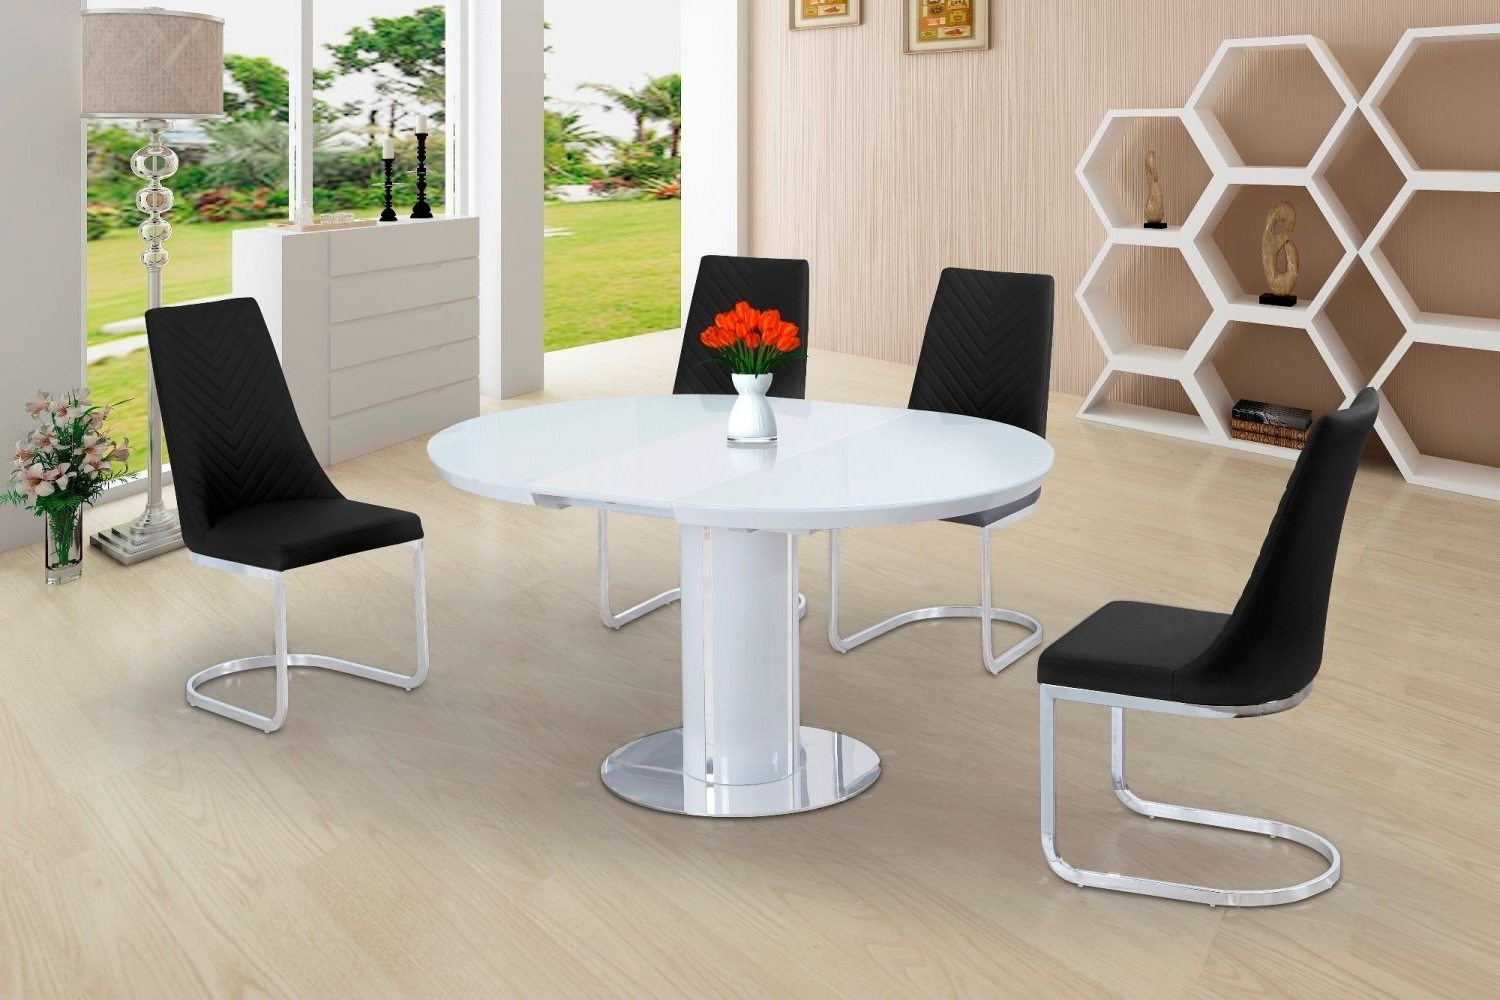 Best And Newest Buy Space Saving White Gloss Extending Round Dining Table Throughout Extendable Round Dining Tables (View 19 of 25)